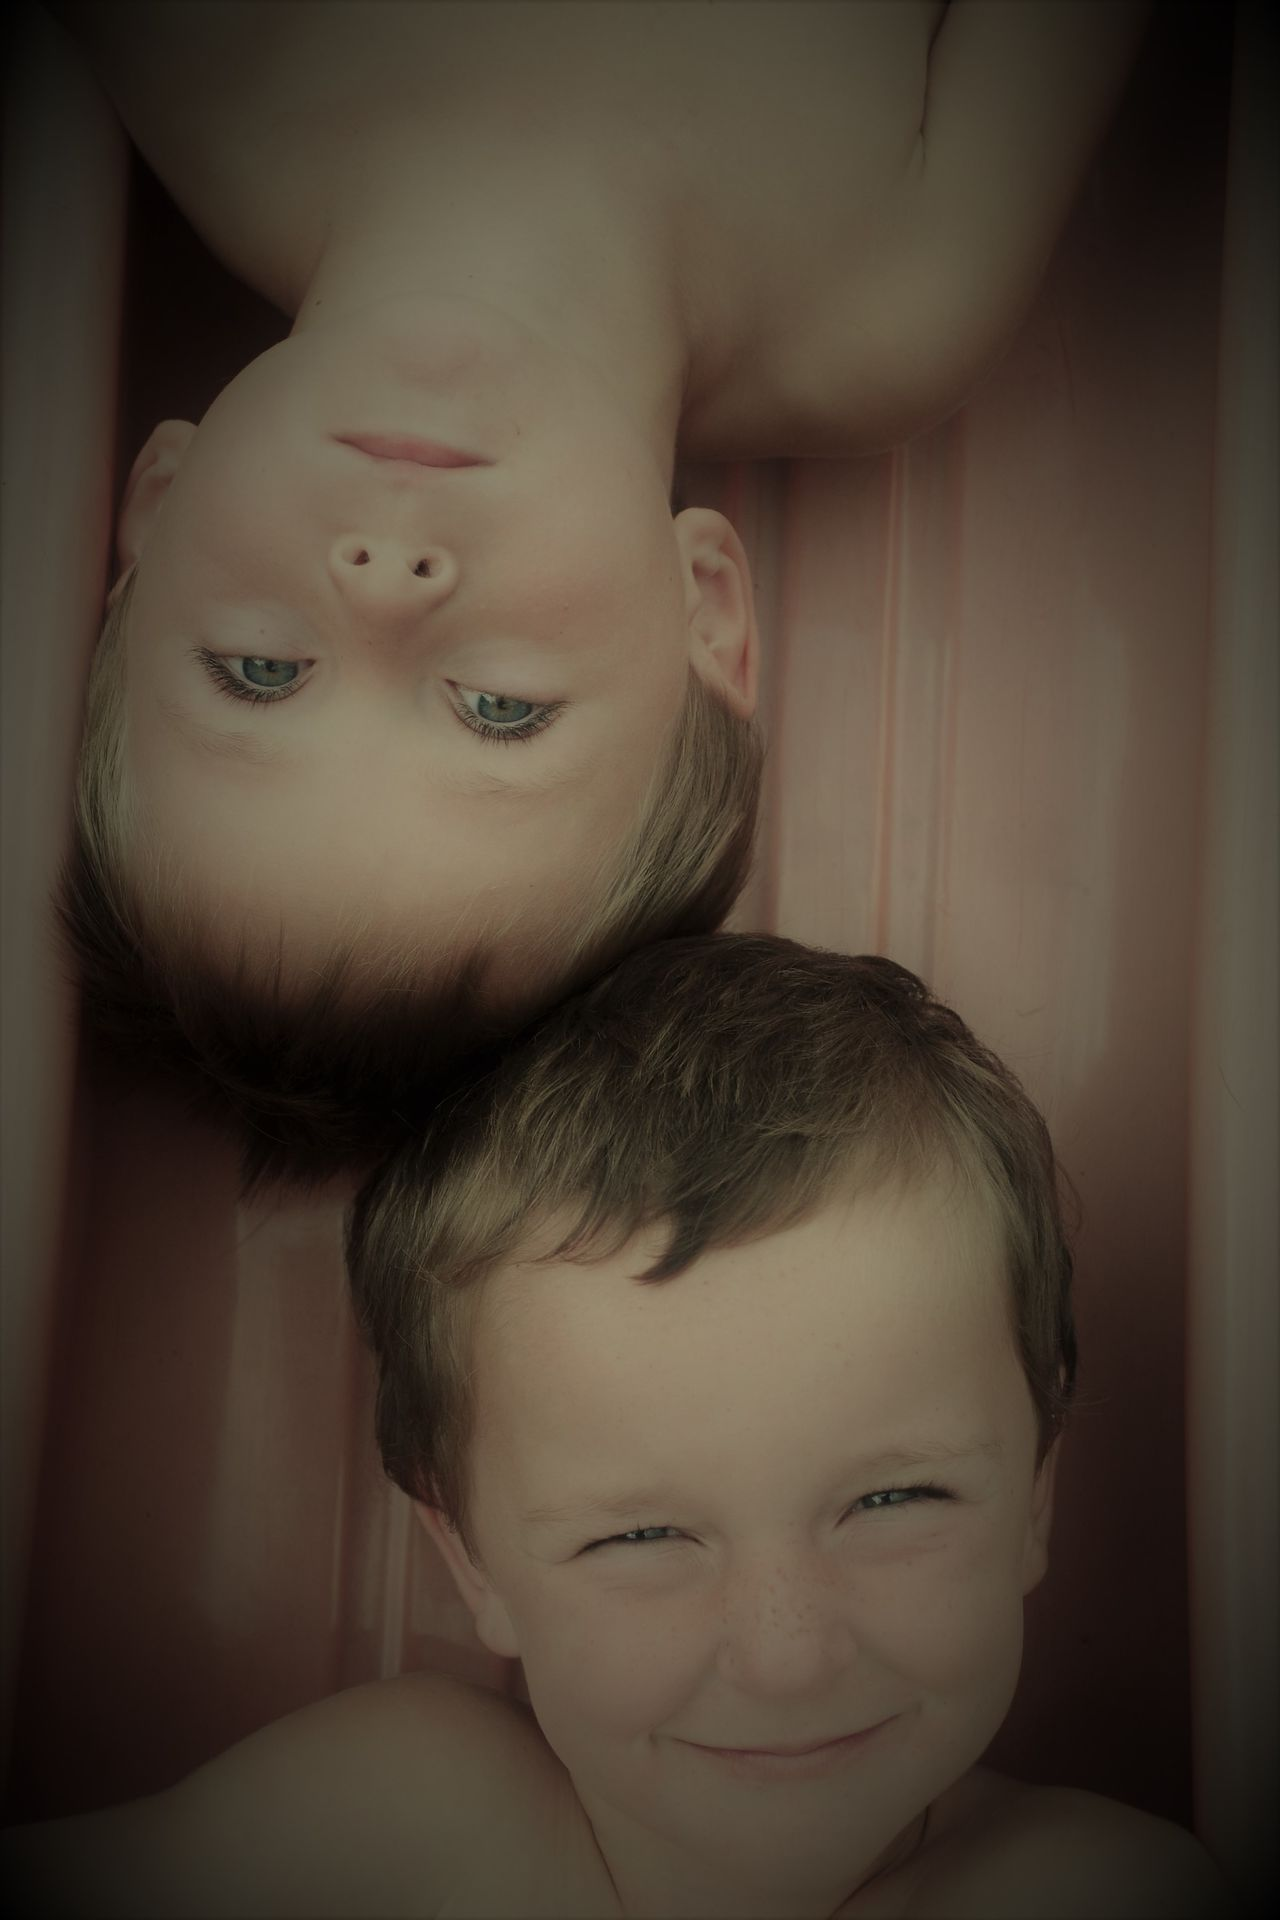 Bonding Boys Childhood Close-up Cute Day Double Trouble Elementary Age EyeEm Best Shots Eyeemnaturelover EyeEmNewHere Family Family With One Child Fresh On Eyeem  Happiness Leisure Activity Looking At Camera Portrait Real People Smiling Son Togetherness TWINS ♥ The Portraitist - 2017 EyeEm Awards